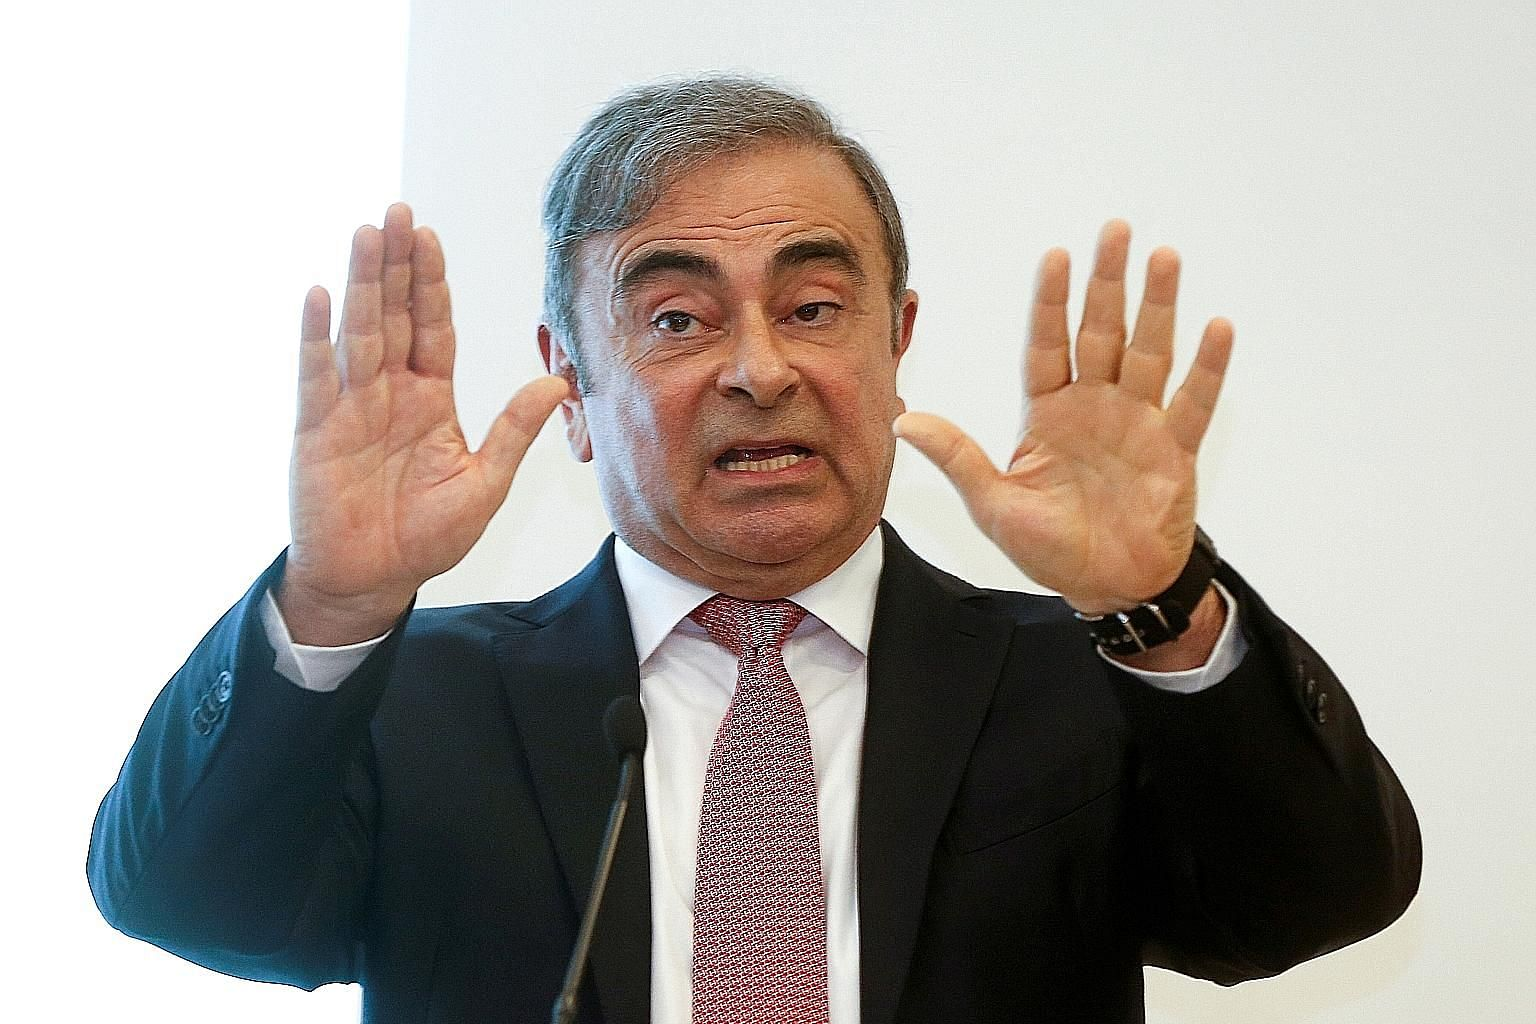 Former Nissan chief Carlos Ghosn, speaking at a news conference in Lebanon on Wednesday after his escape from Japan, argued his case for why he is innocent of charges of undeclared income and misuse of corporate funds, and why his arrest was really p